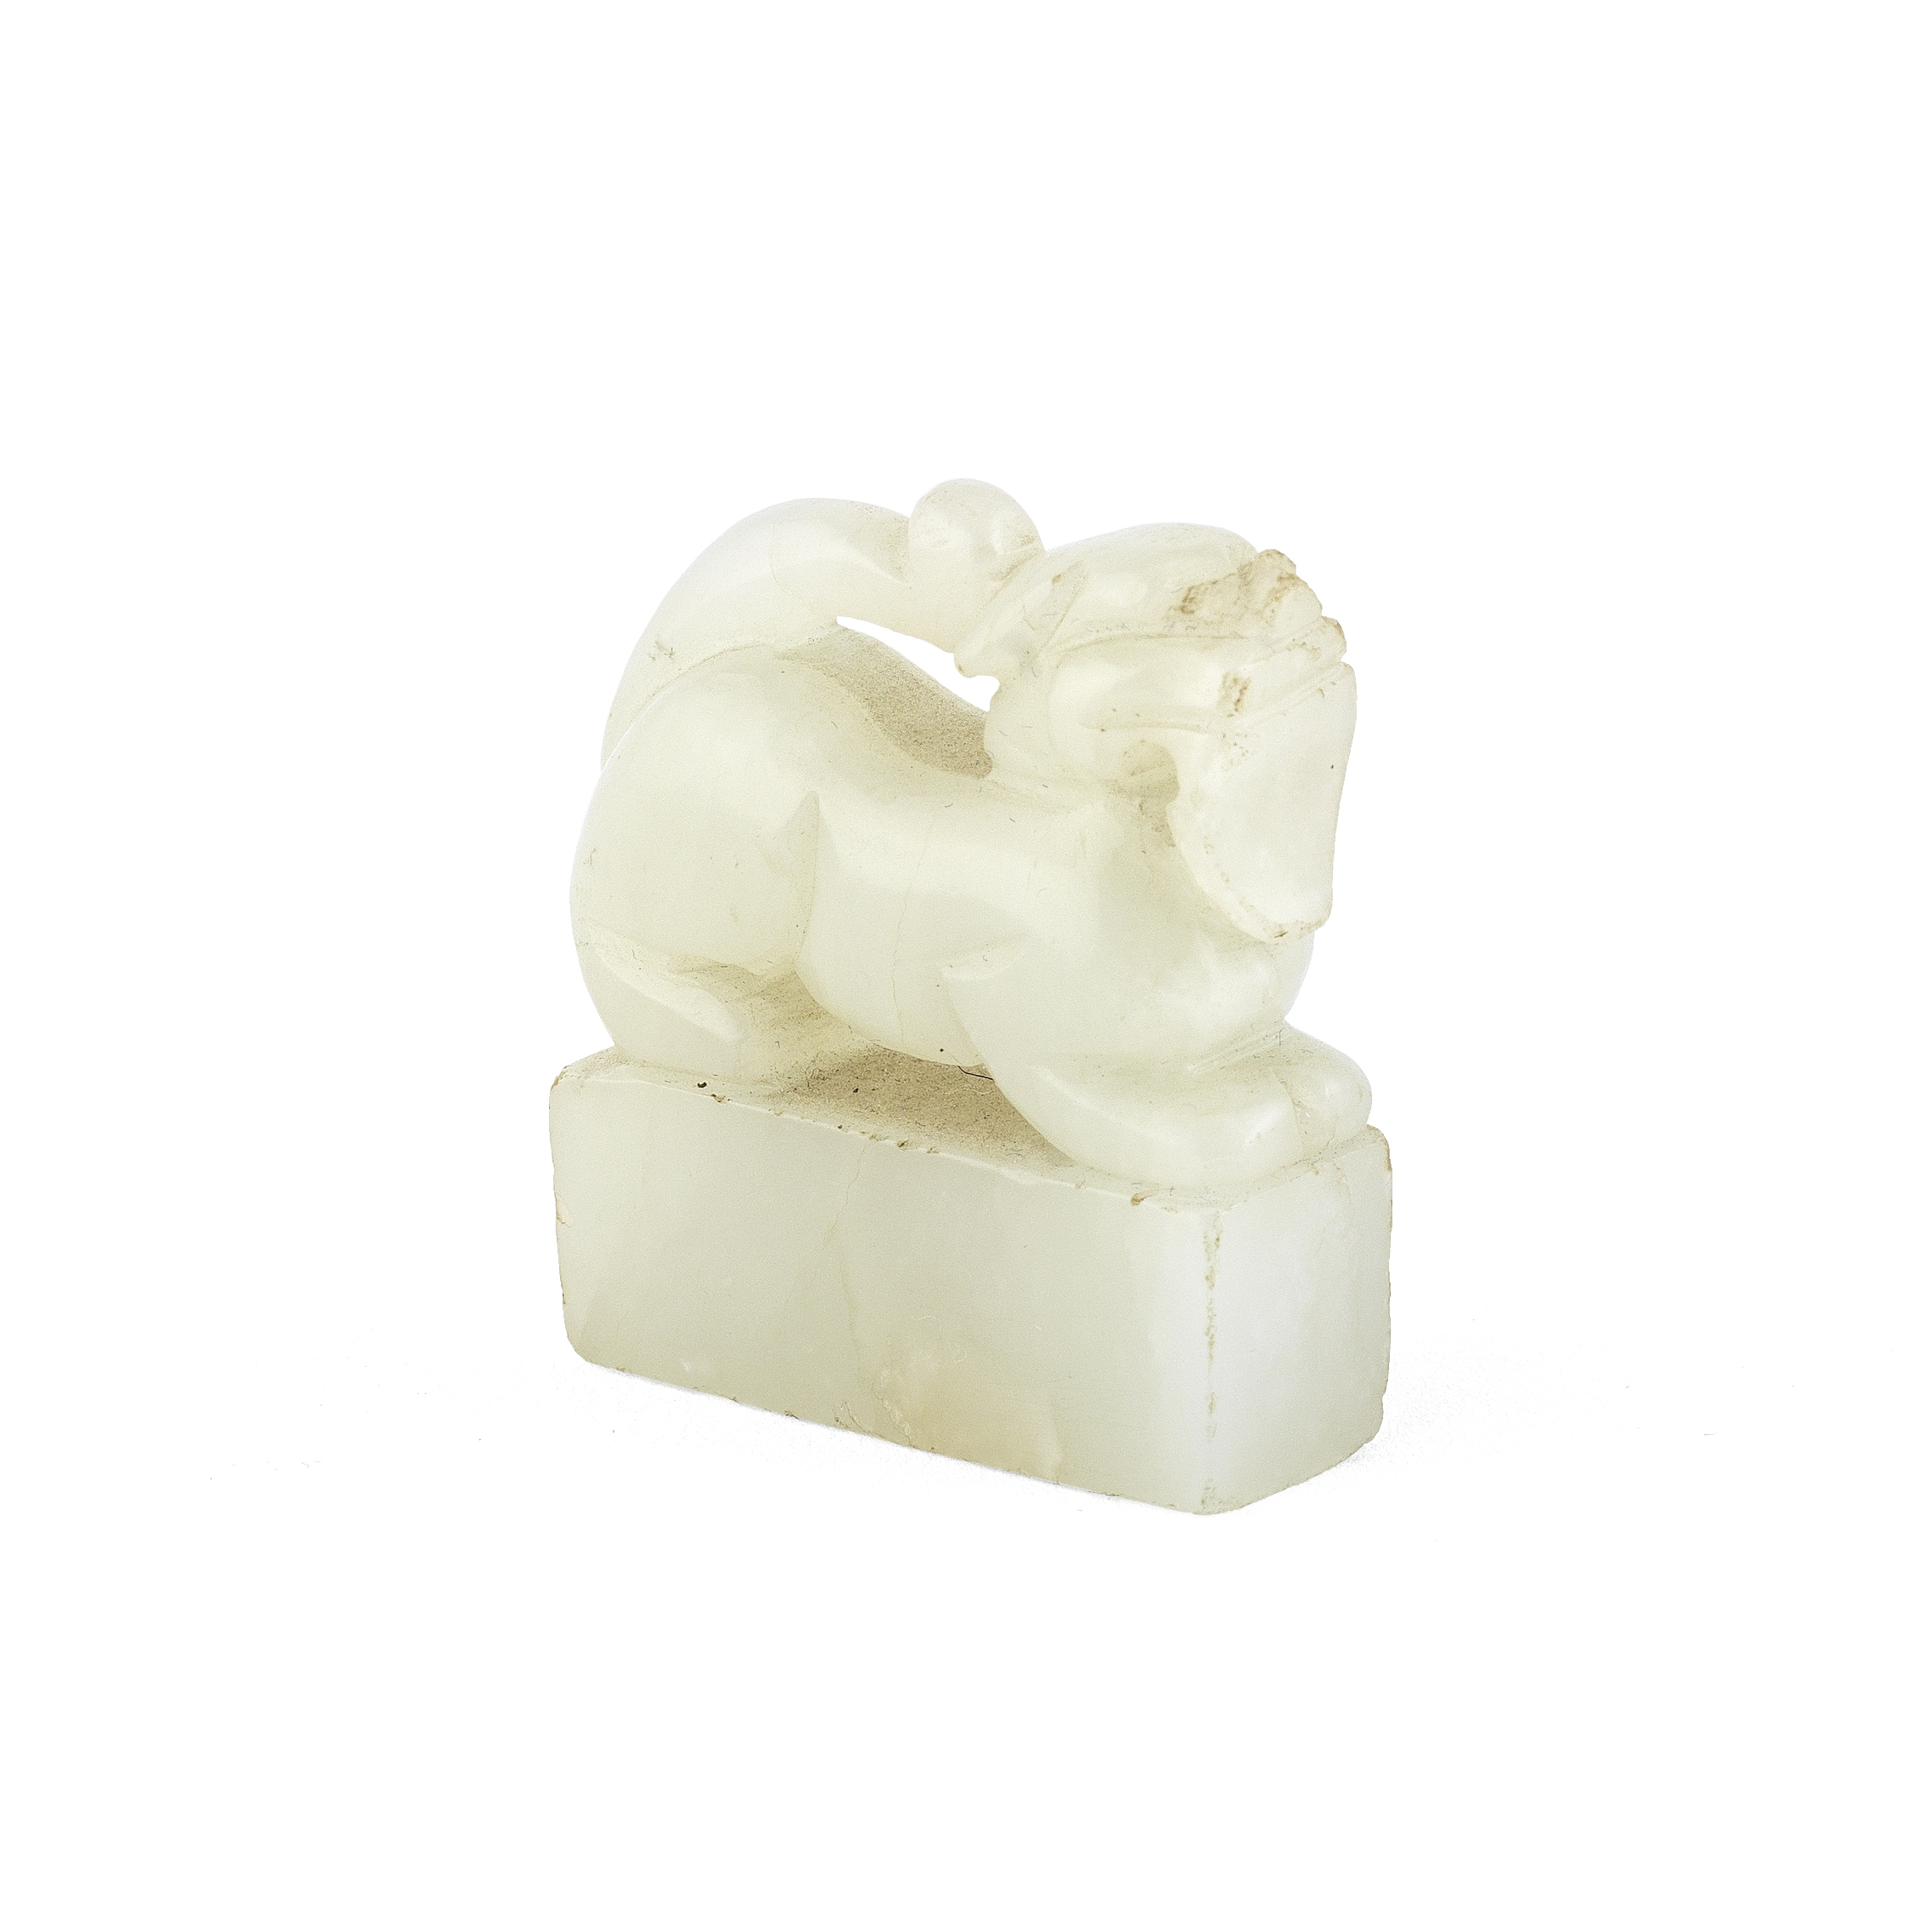 AN INSCRIBED JADE SEAL 18th/19th century